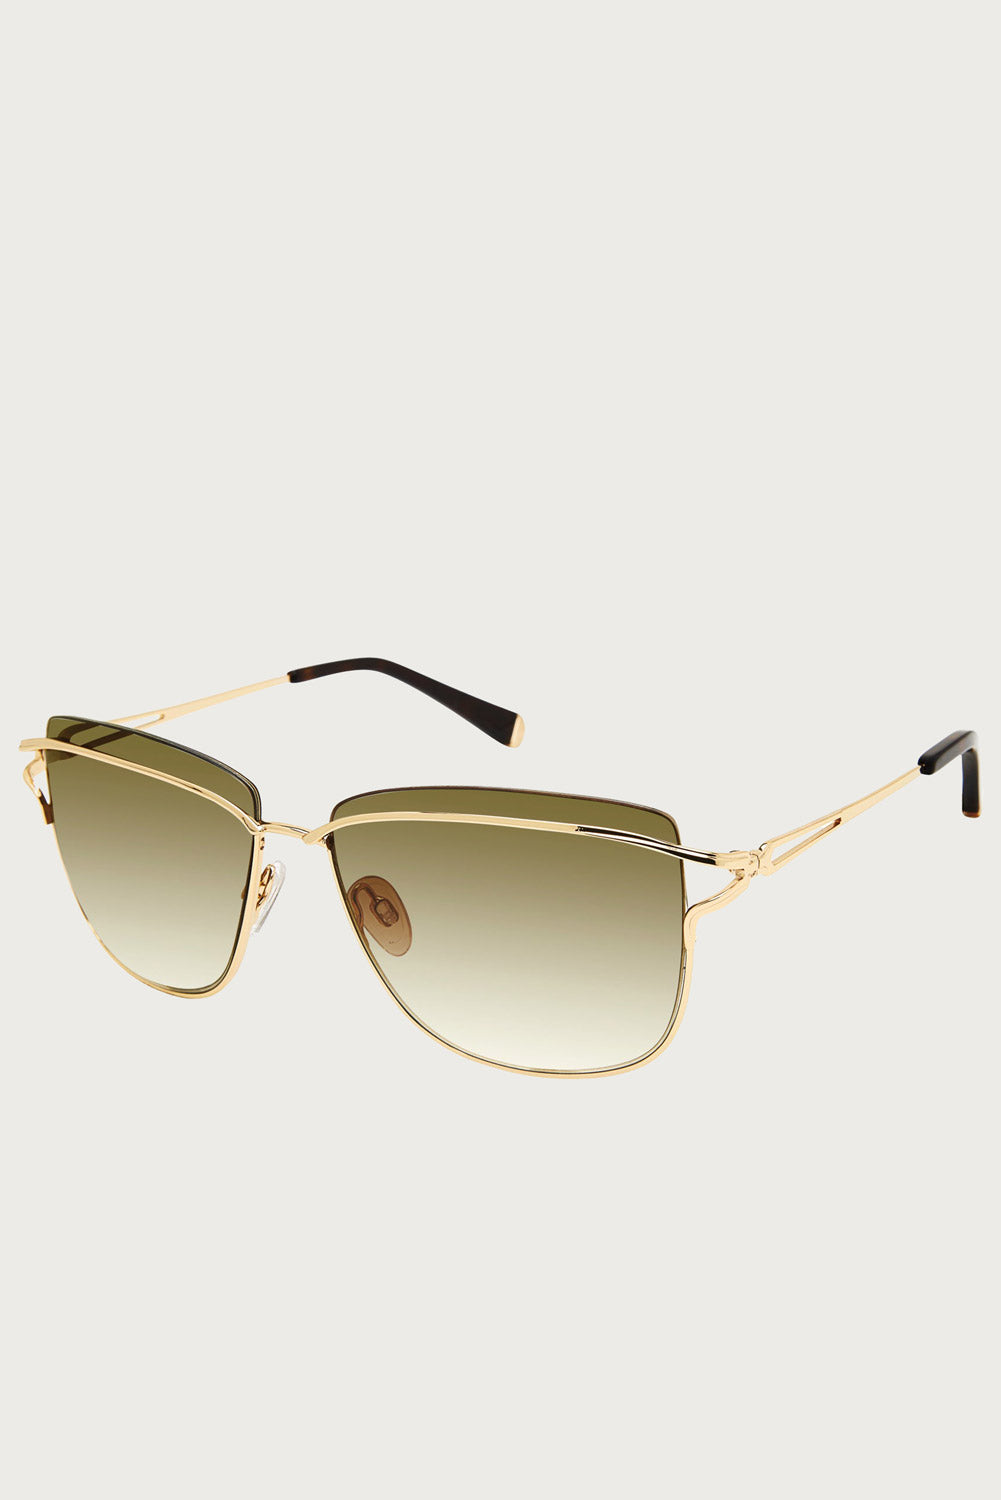 Noor Sunglasses in Gold